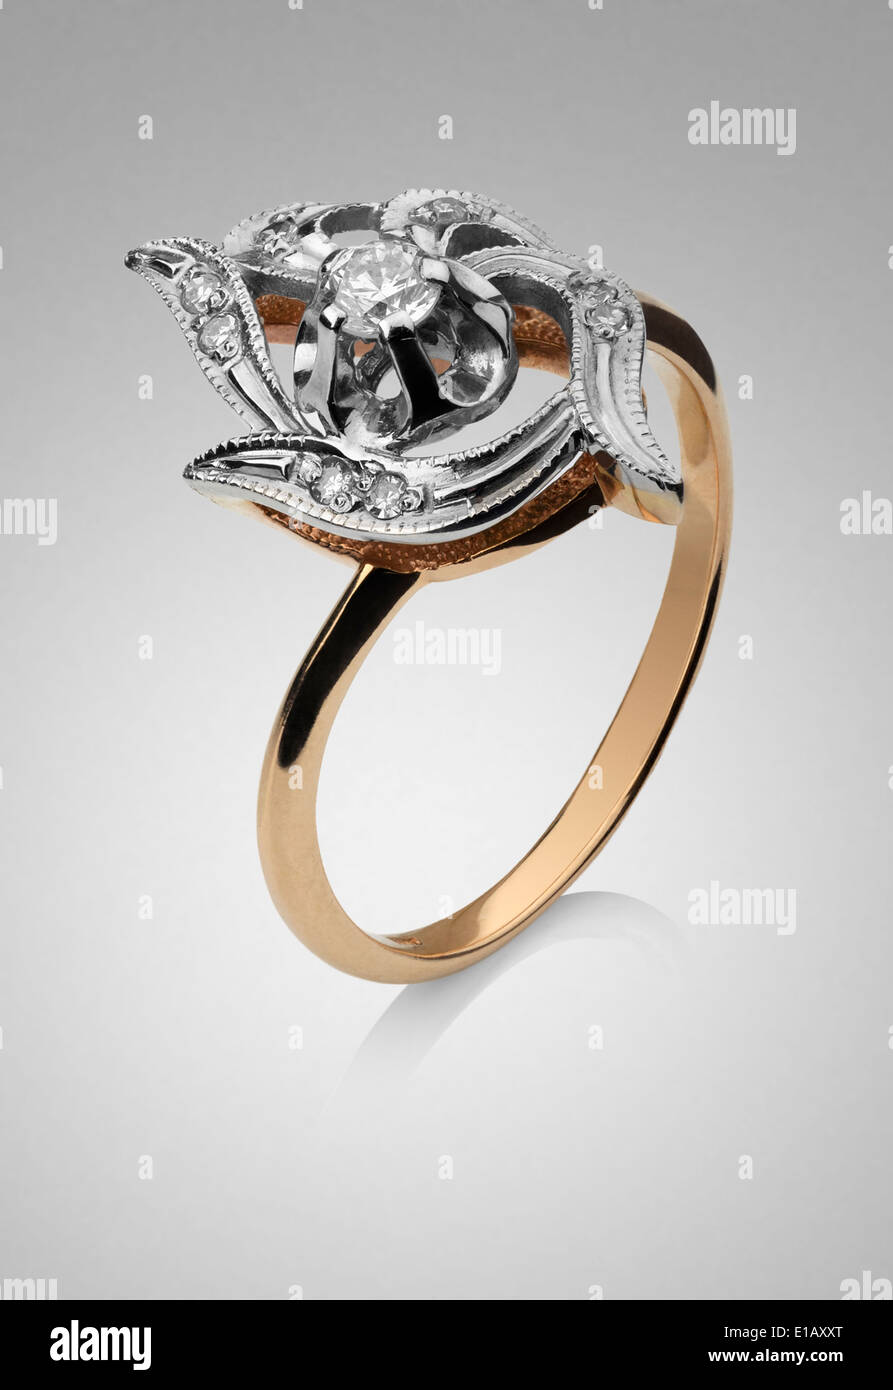 Women's gold ring with platinum and diamond gems - Stock Image